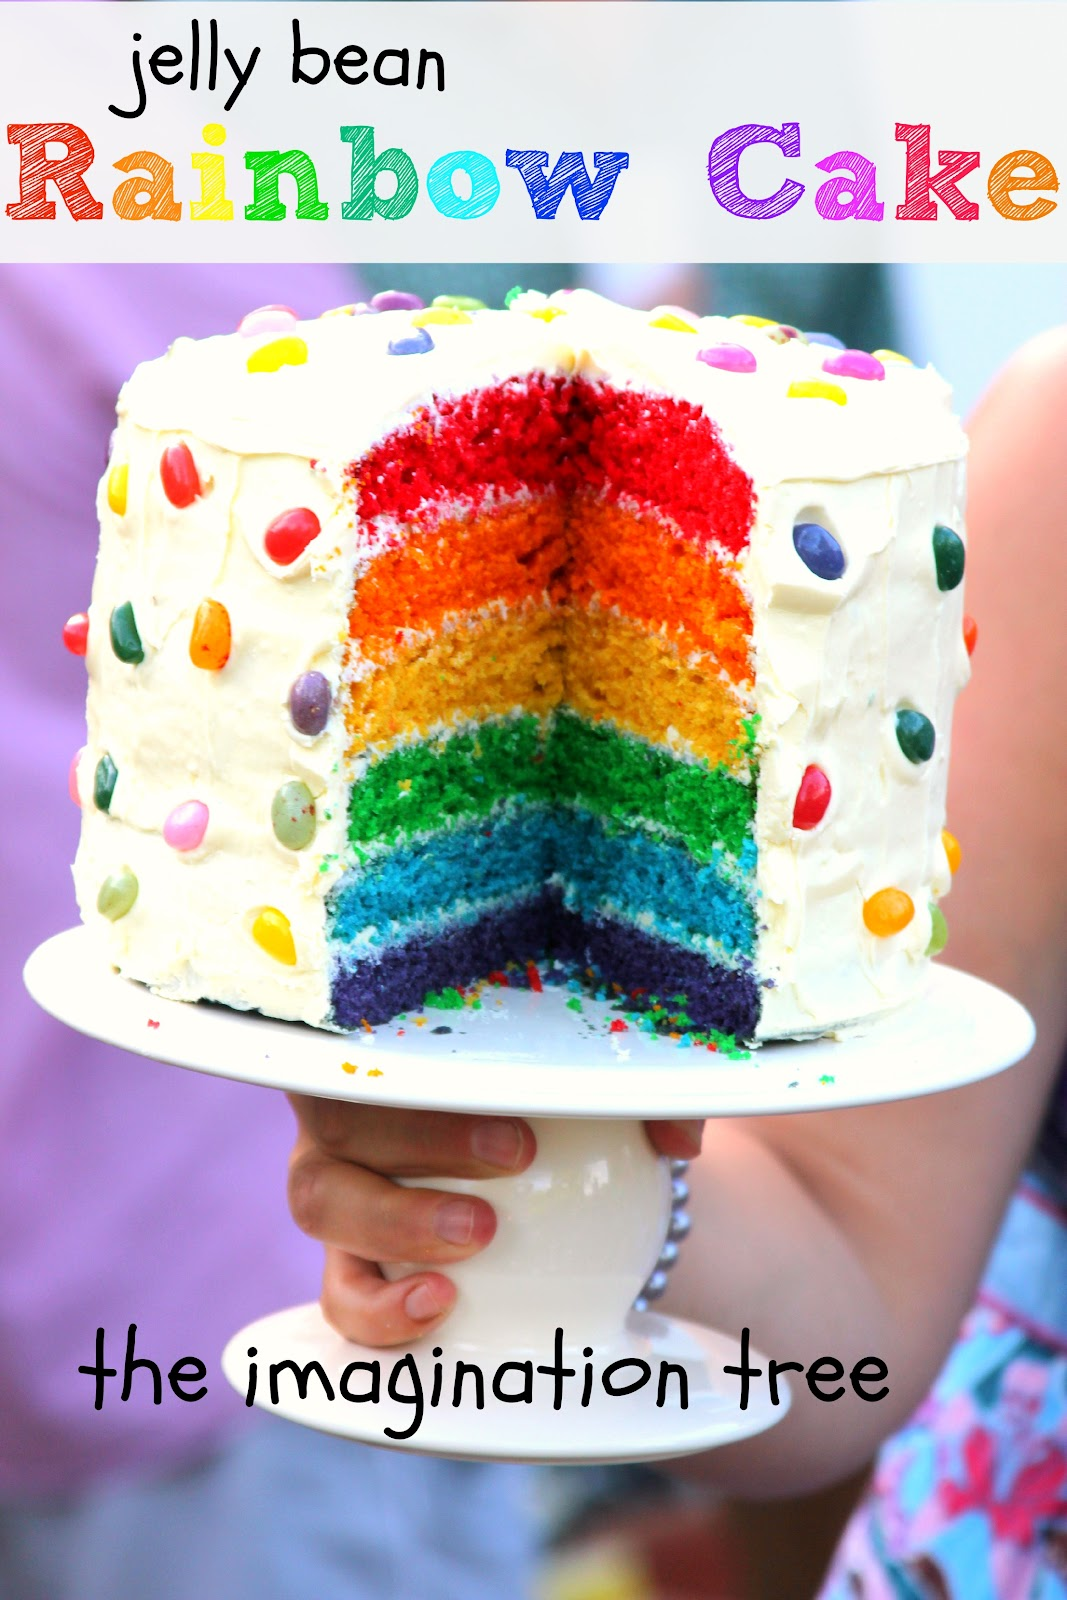 Easy To Make Cake Designs http://theimaginationtree.com/2012/09/how-to-make-rainbow-cake.html